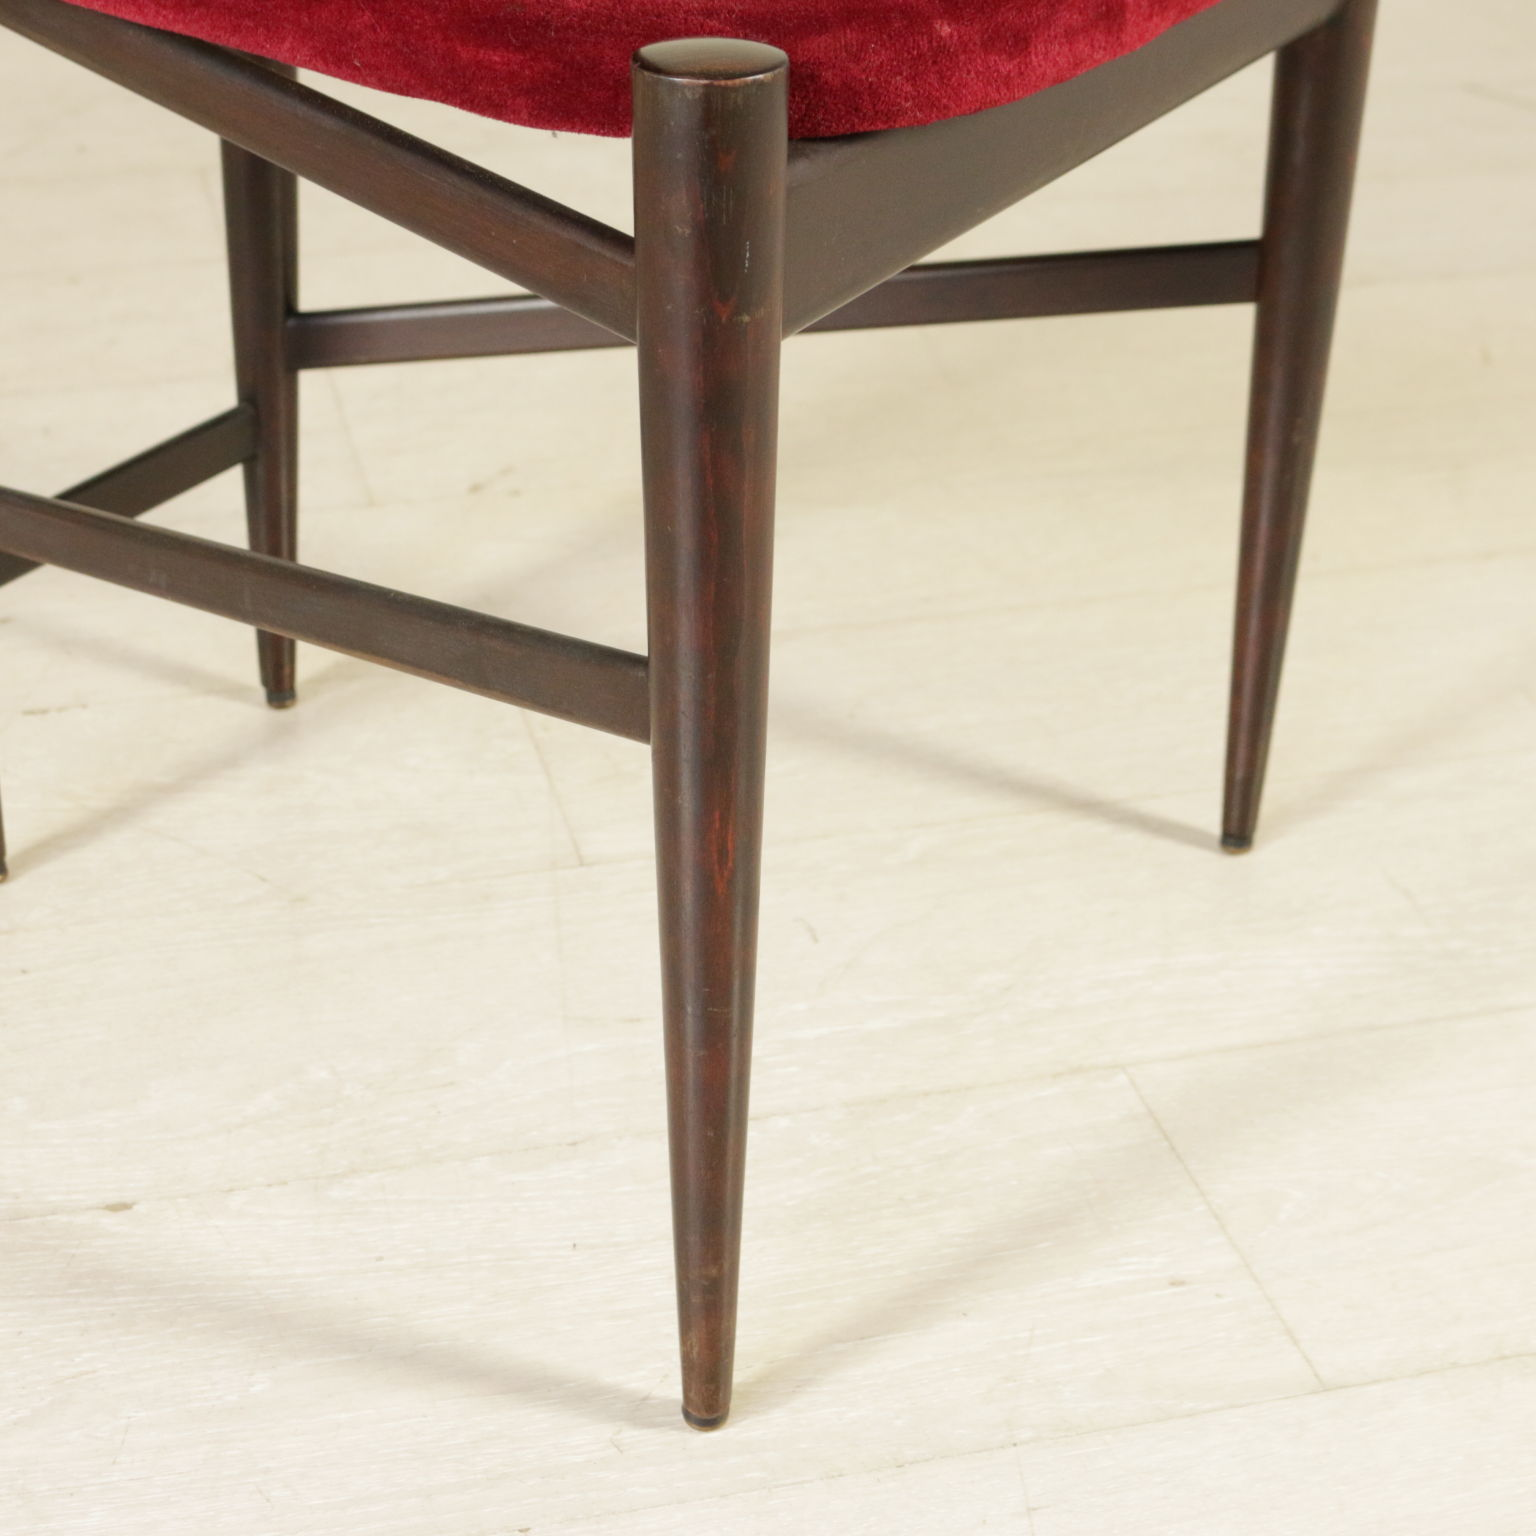 Chairs 50's - Chairs - Modern design - dimanoinmano.it